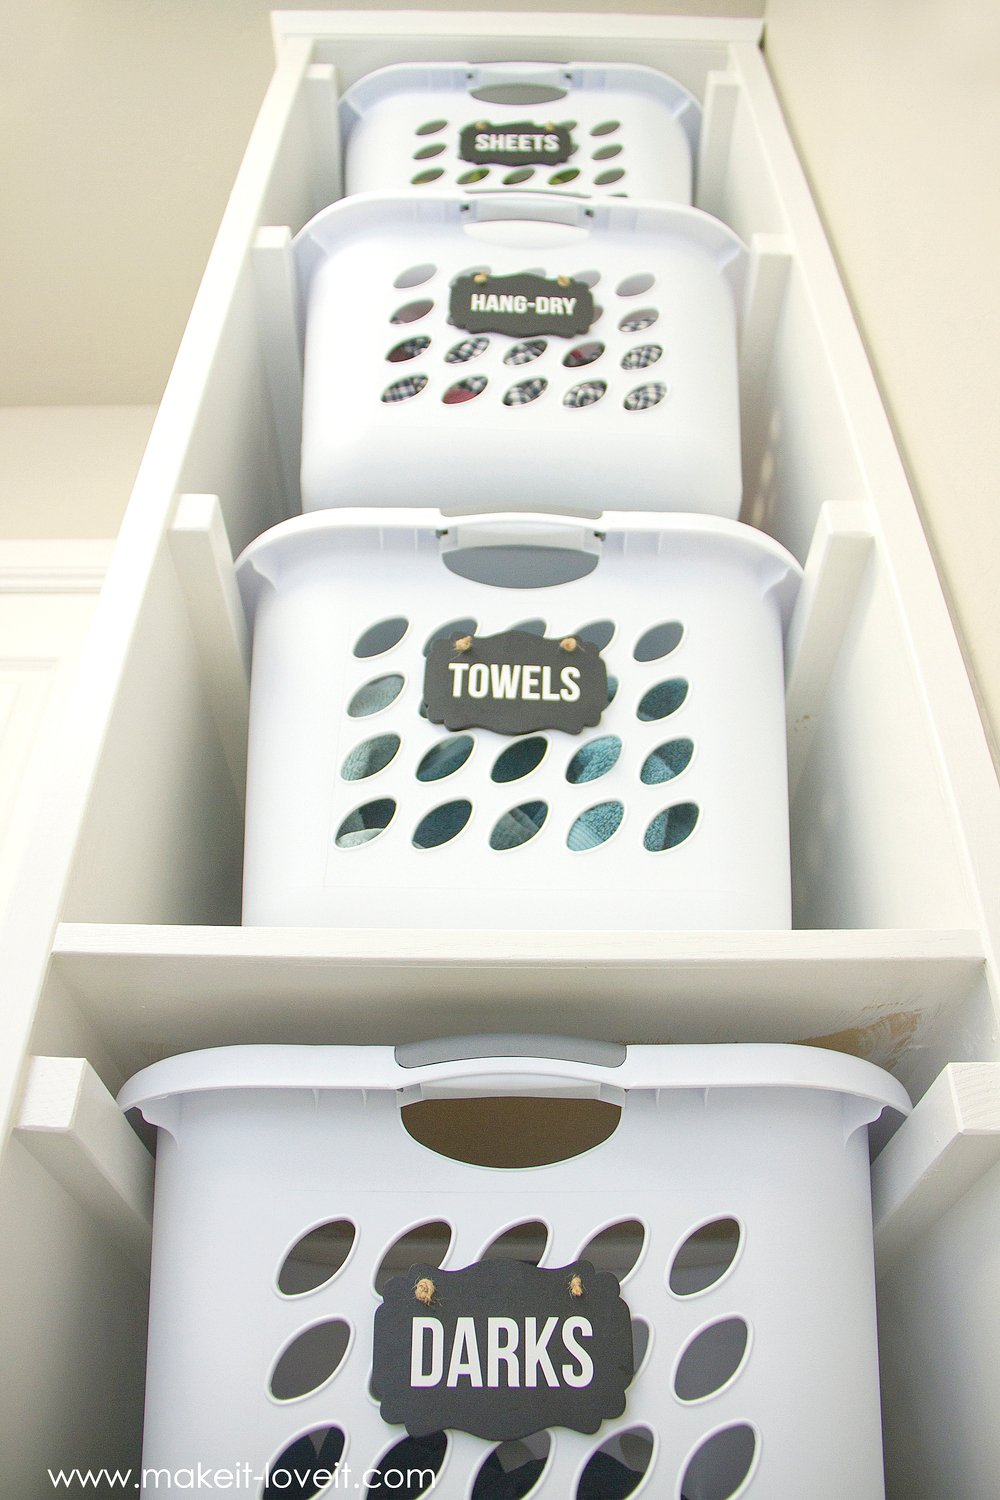 Laundry Basket Organizer (...Built In) | Make It and Love It